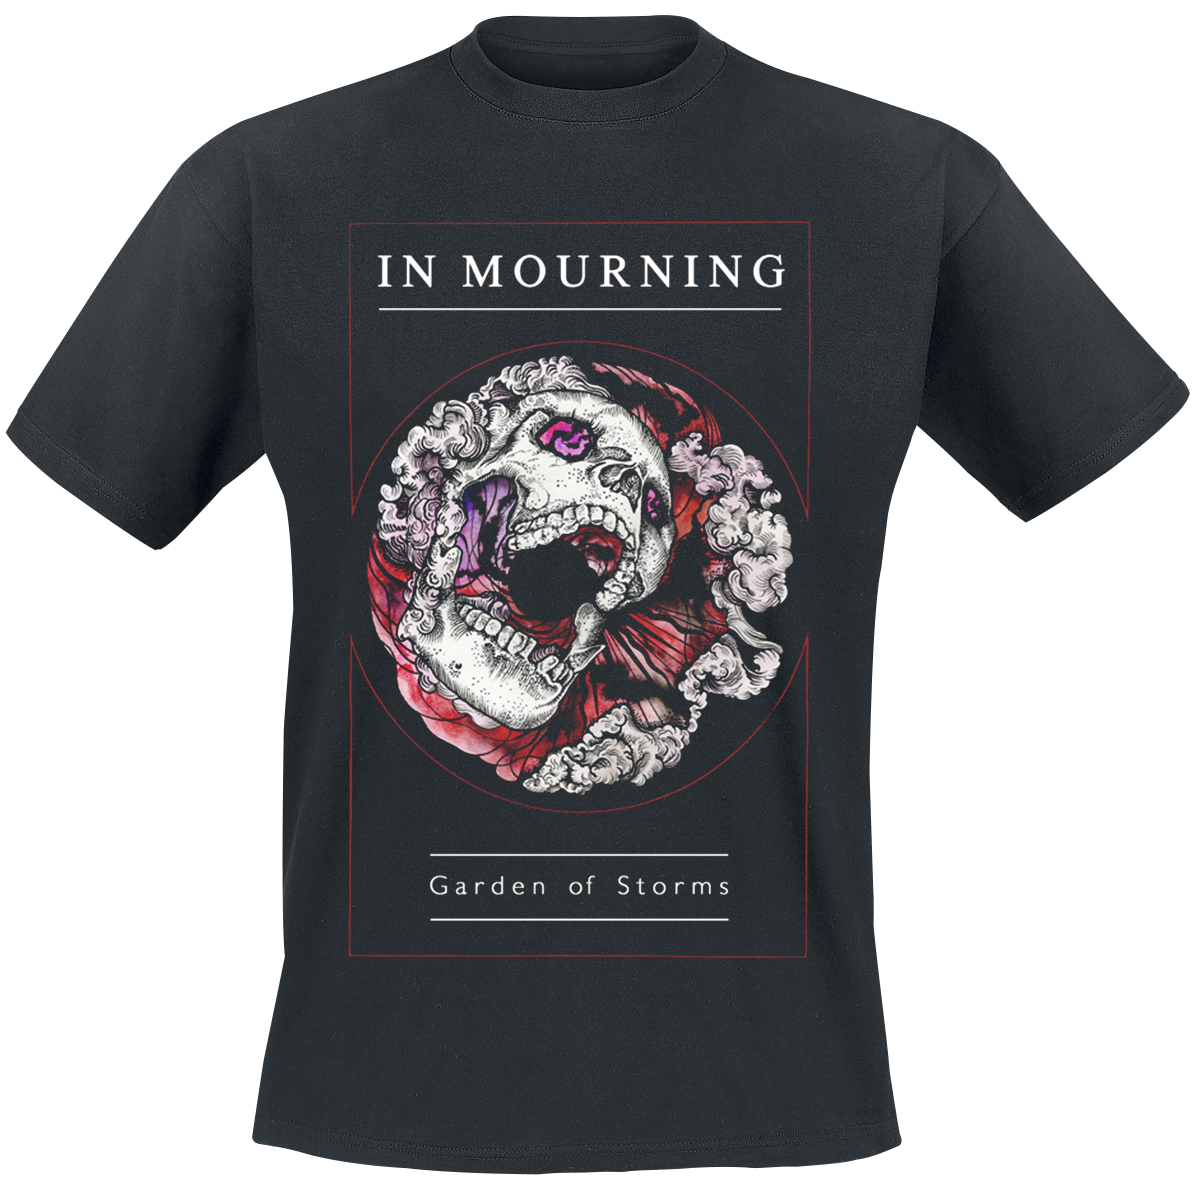 In Mourning - Garden of storms - T-Shirt - Standard image